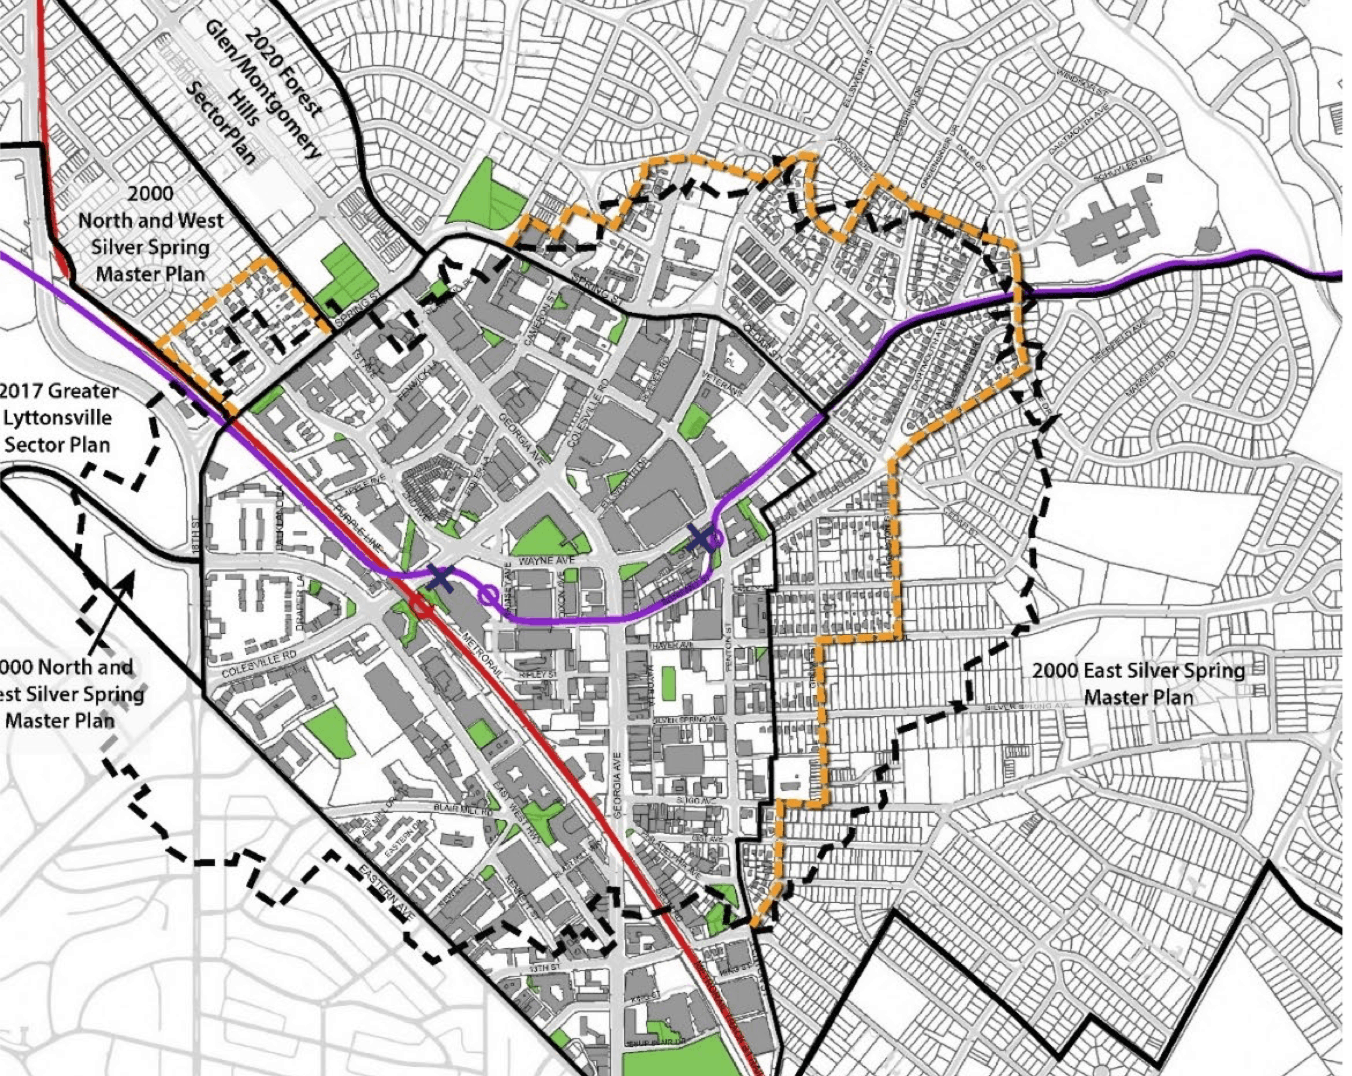 "Planners to Hold Virtual Listening Sessions on Downtown, Adjacent Communities Plan - The county's Planning Department will hold the first of three virtual ""listening sessions"" on what's been rechristened the Silver Spring Downtown and Adjacent Communities Plan on Tuesday, July 21 from noon to 1:15 p.m. The discussion is part of the launch of the sector plan process for the Central Business District and surrounding area."